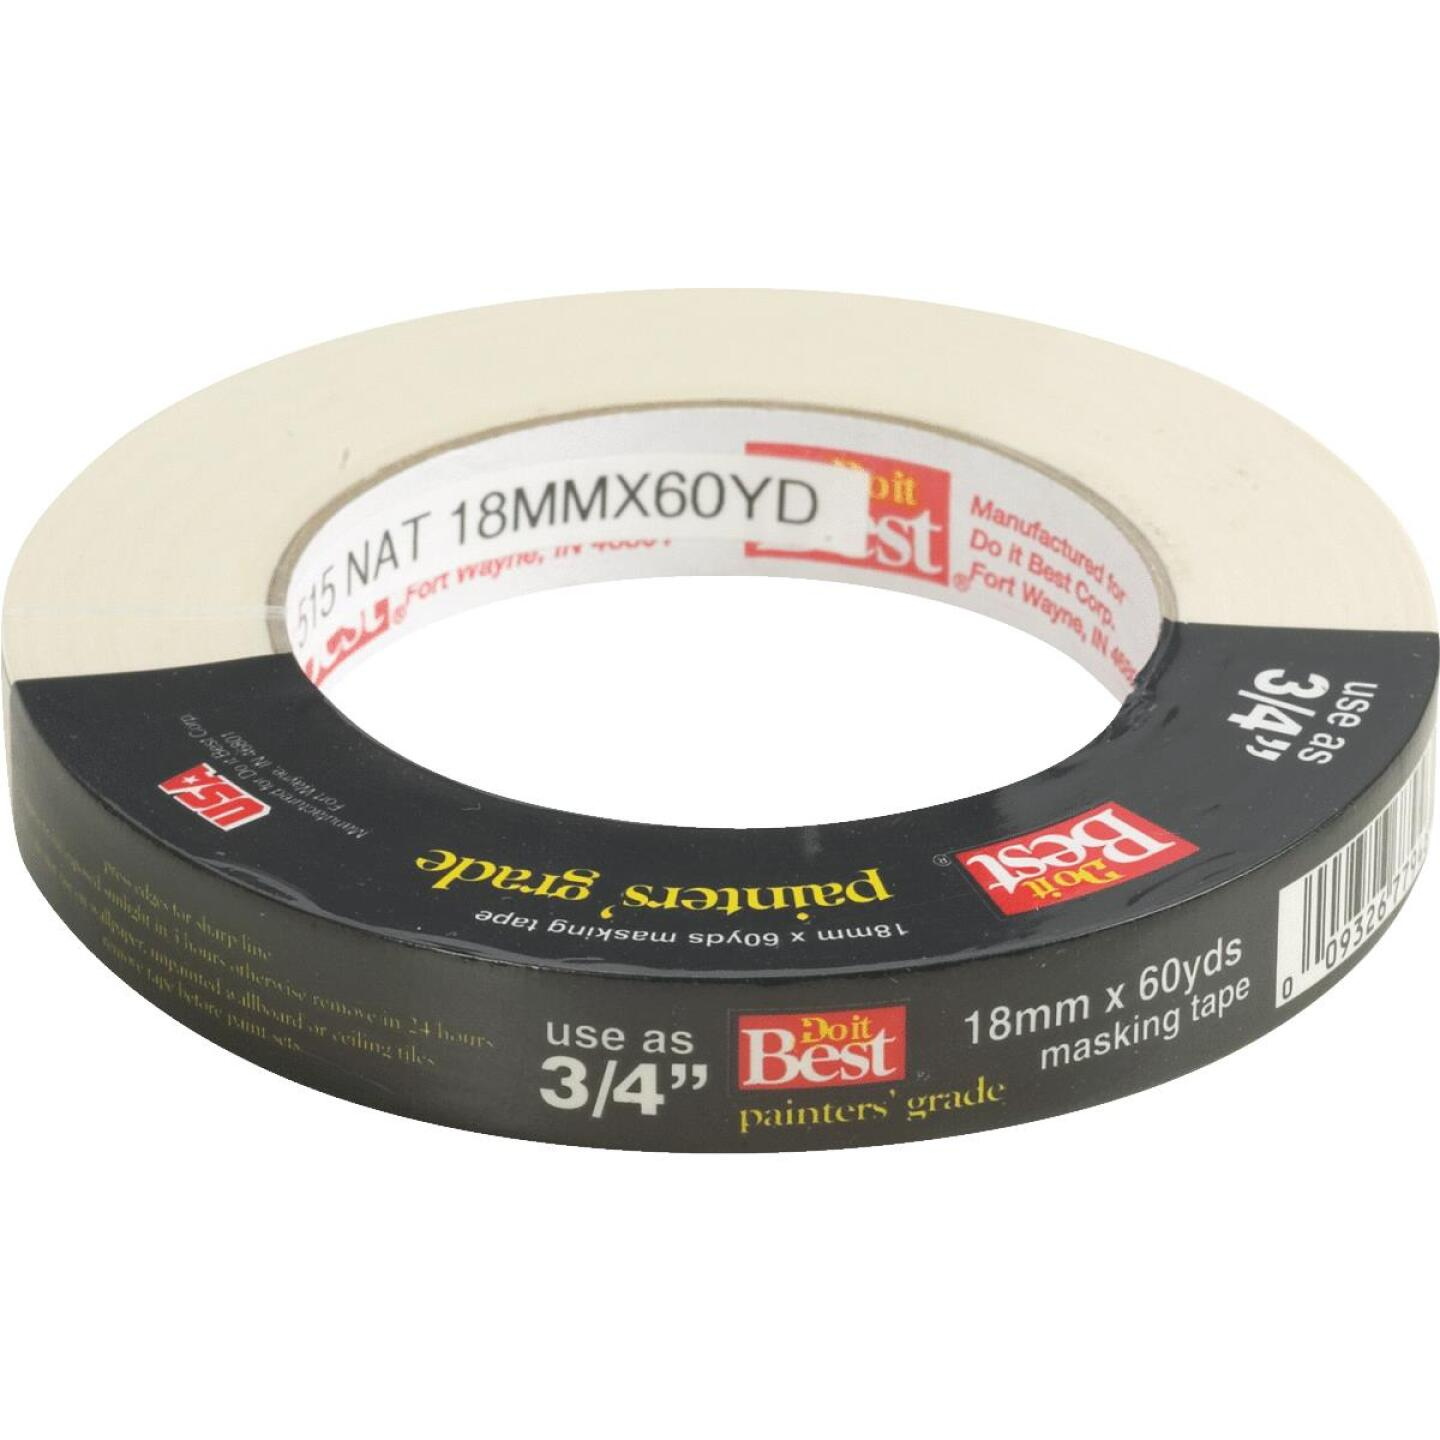 Do it Best 0.70 In. x 60 Yd. Painters Grade Masking Tape Image 1